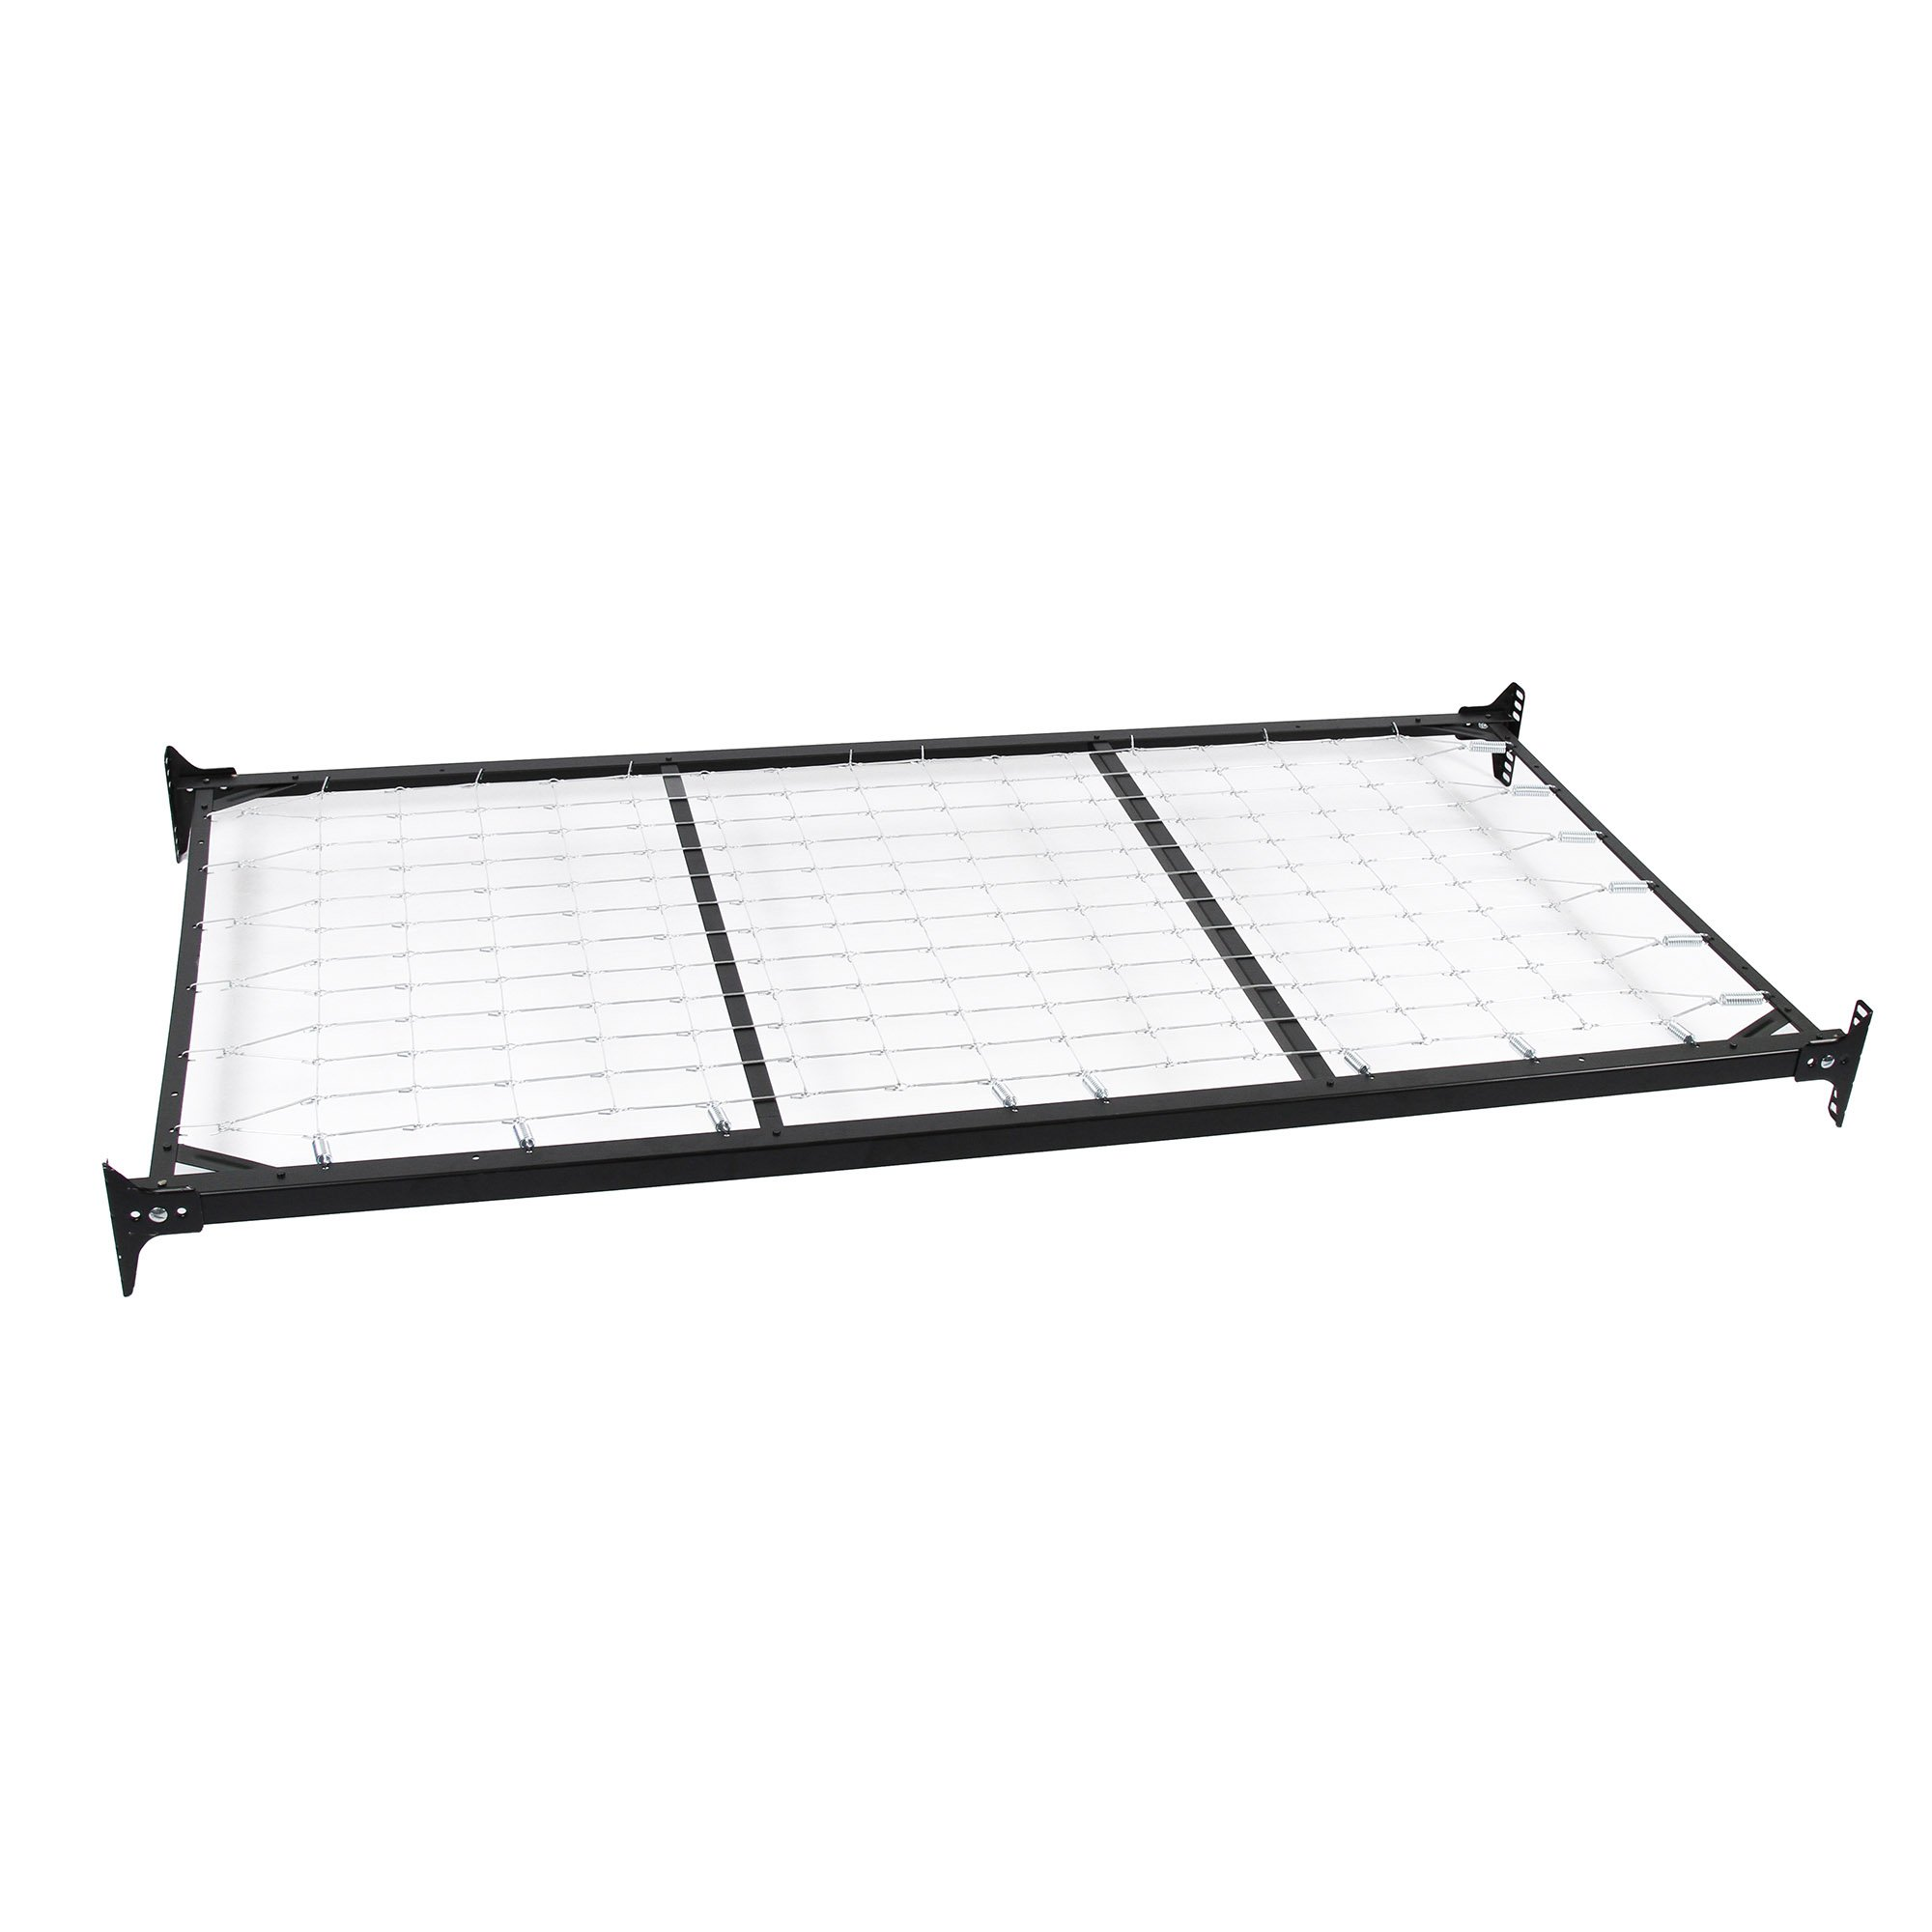 Caroline Complete Metal Daybed with Link Spring and Trundle Bed Pop-Up Frame, Flint Finish, Twin by Adjustables by Leggett & Platt (Image #6)